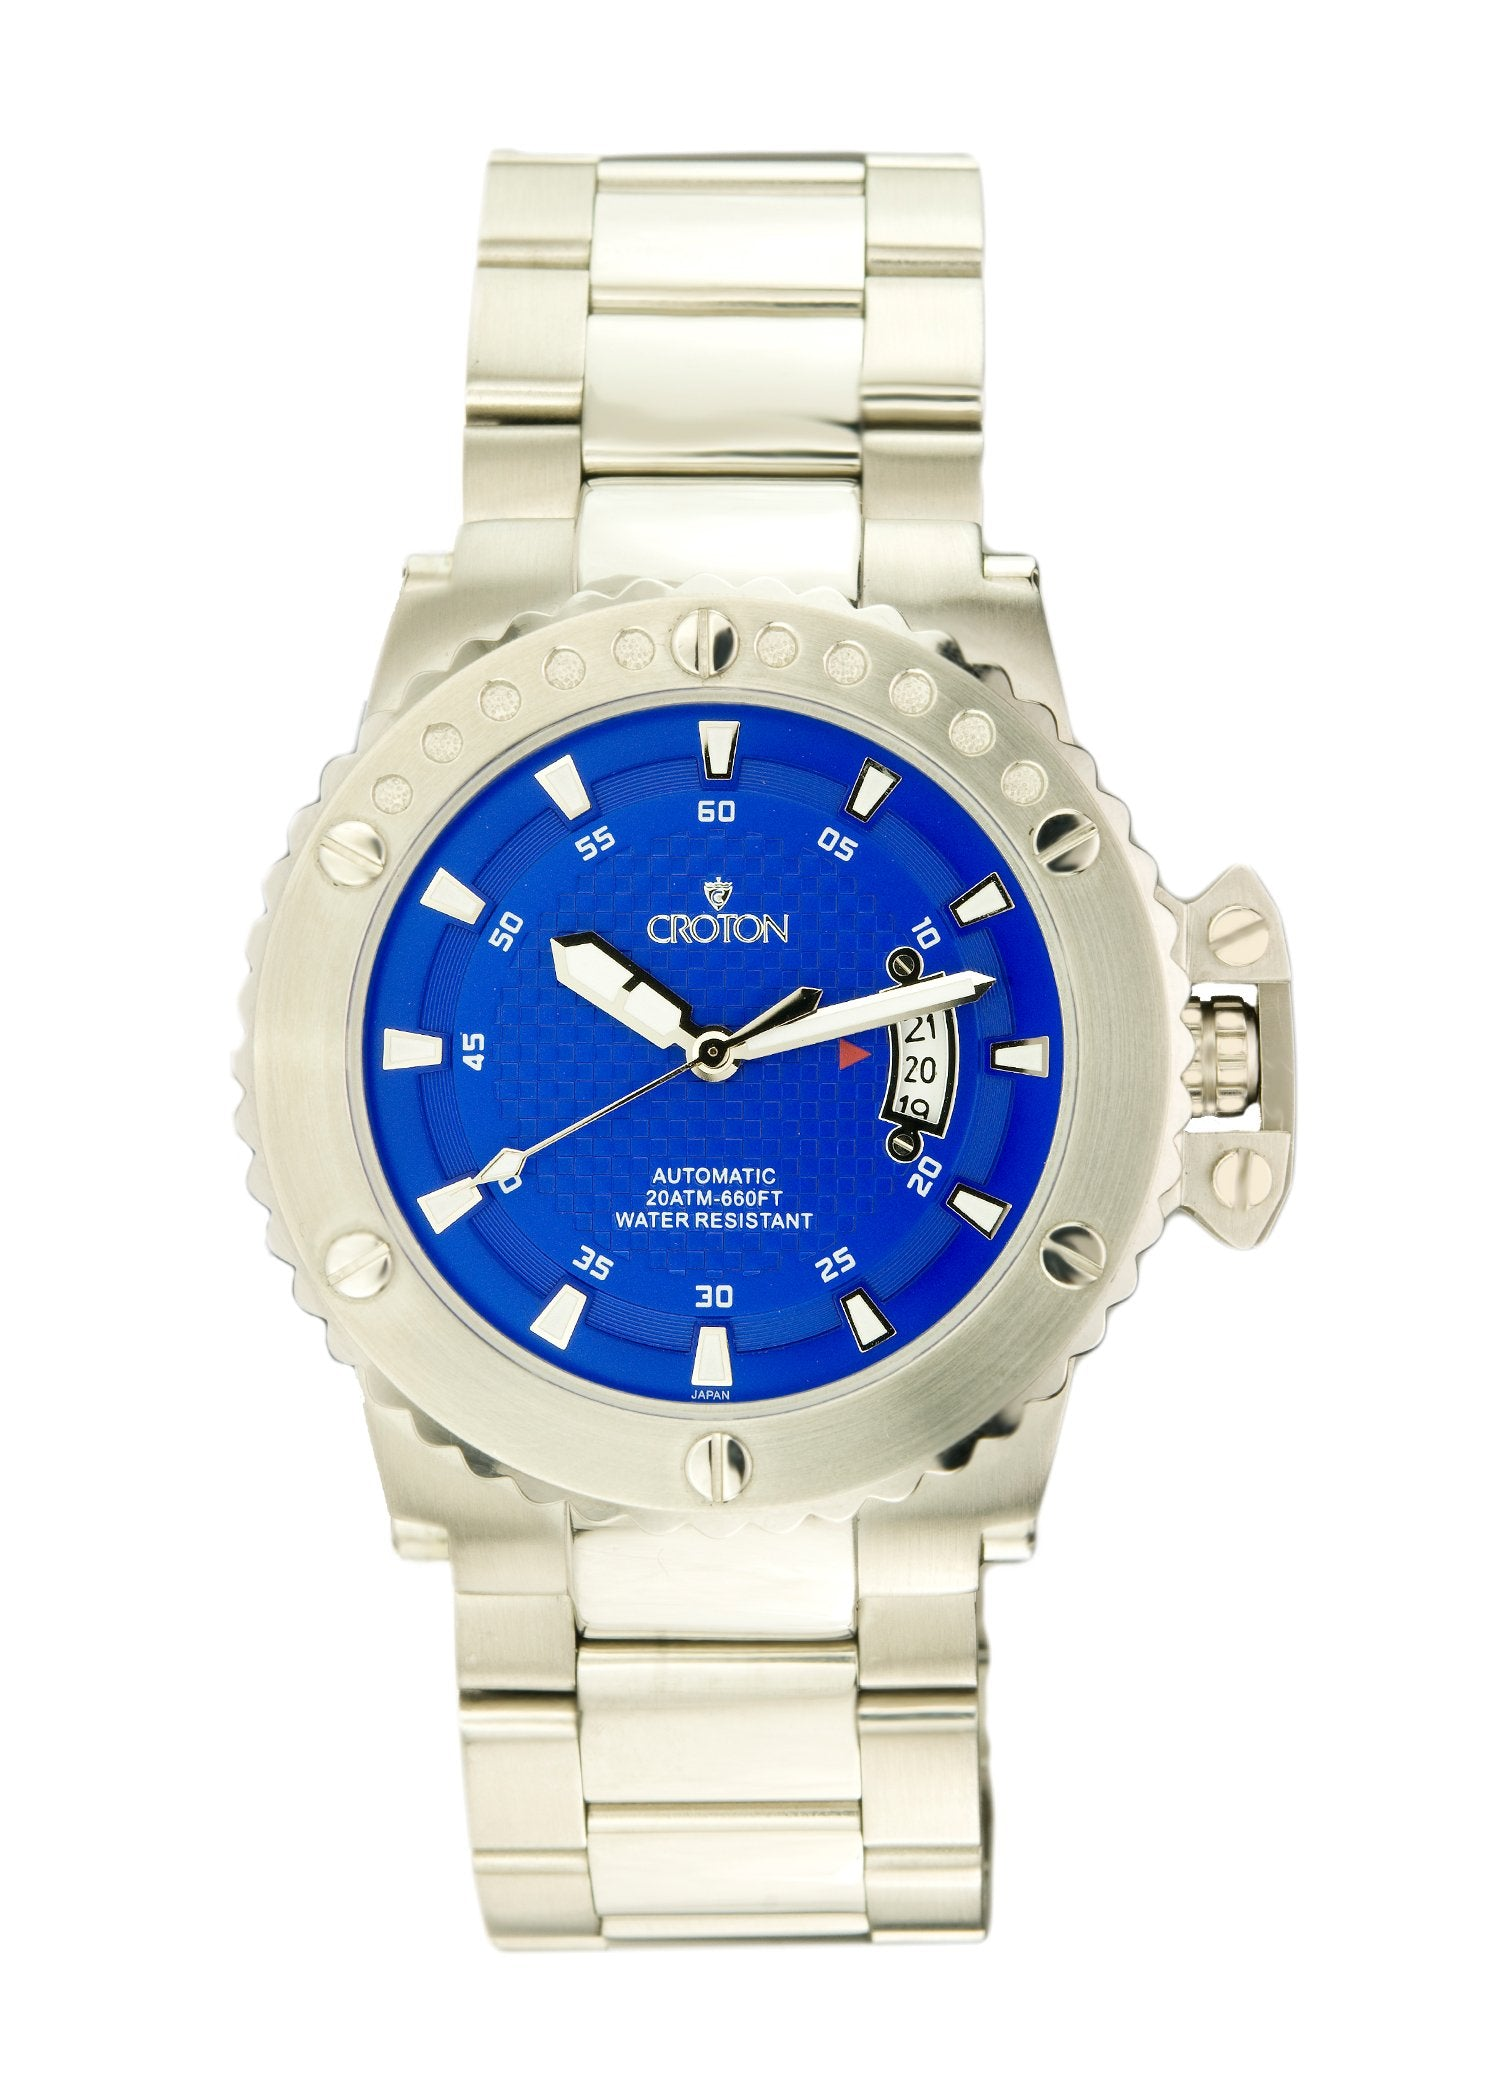 7fd67e20e Mens Automatic CR8315 All stainless steel Watch Blue Dial - CROTON GROUP